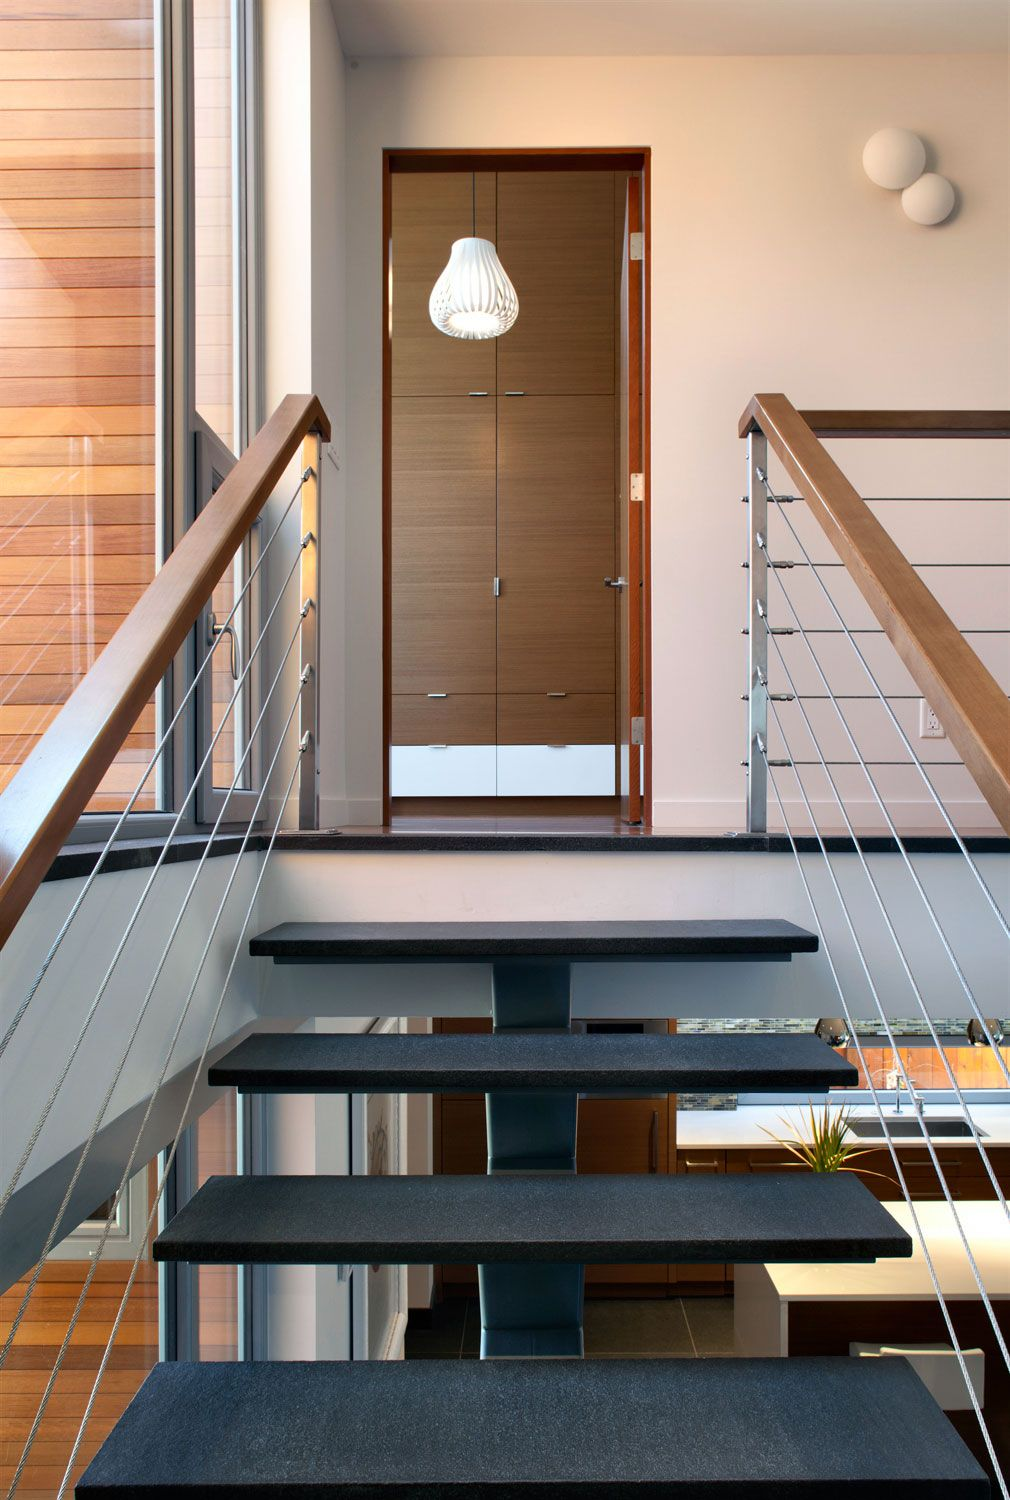 Great Wooden Handrails Ideas : Cable Wire Railings Modern Home Design Ideas  With Wooden Handrail And